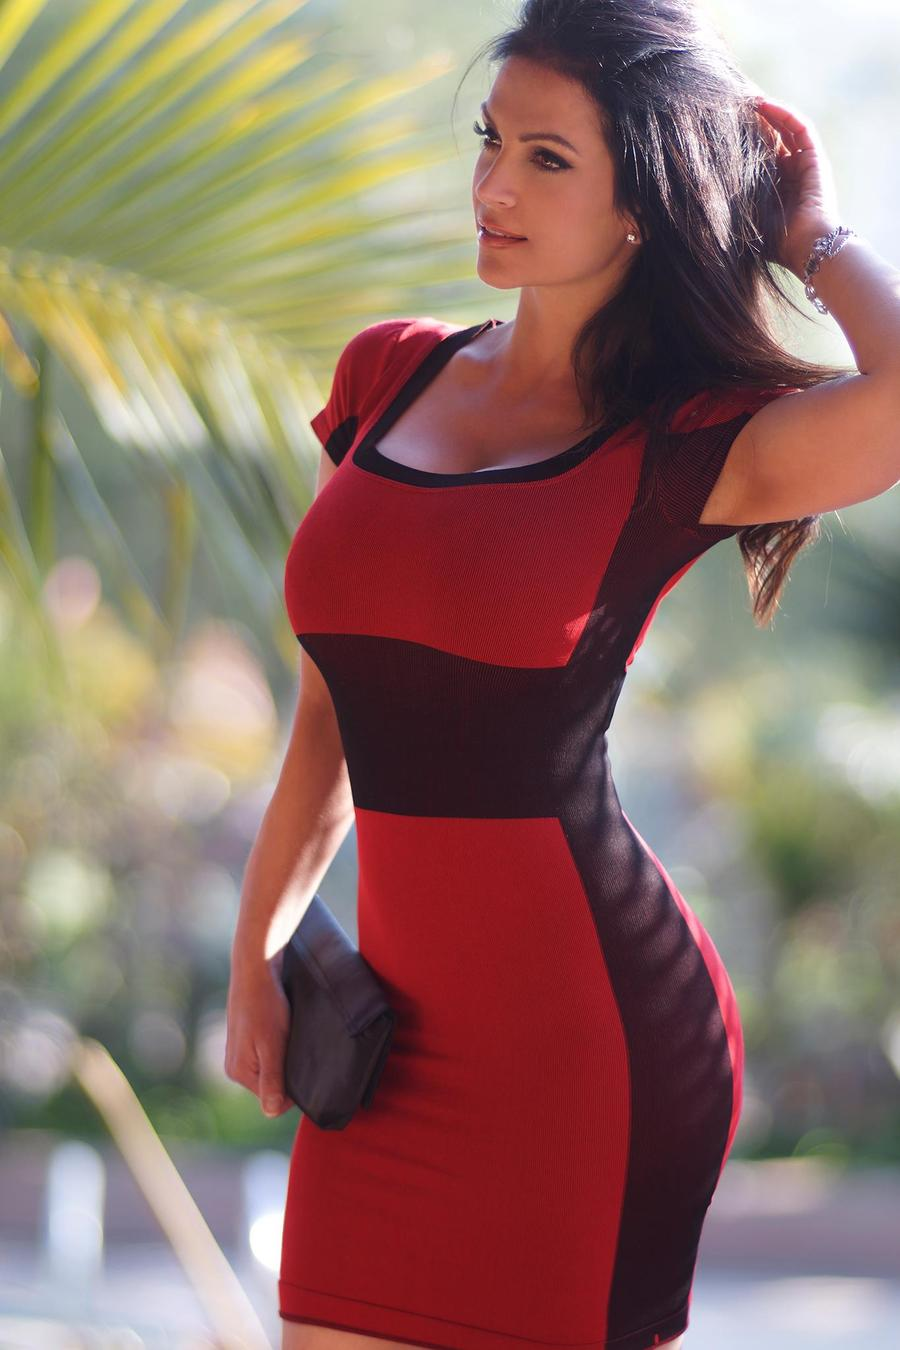 denise milani in a dress - photo #18